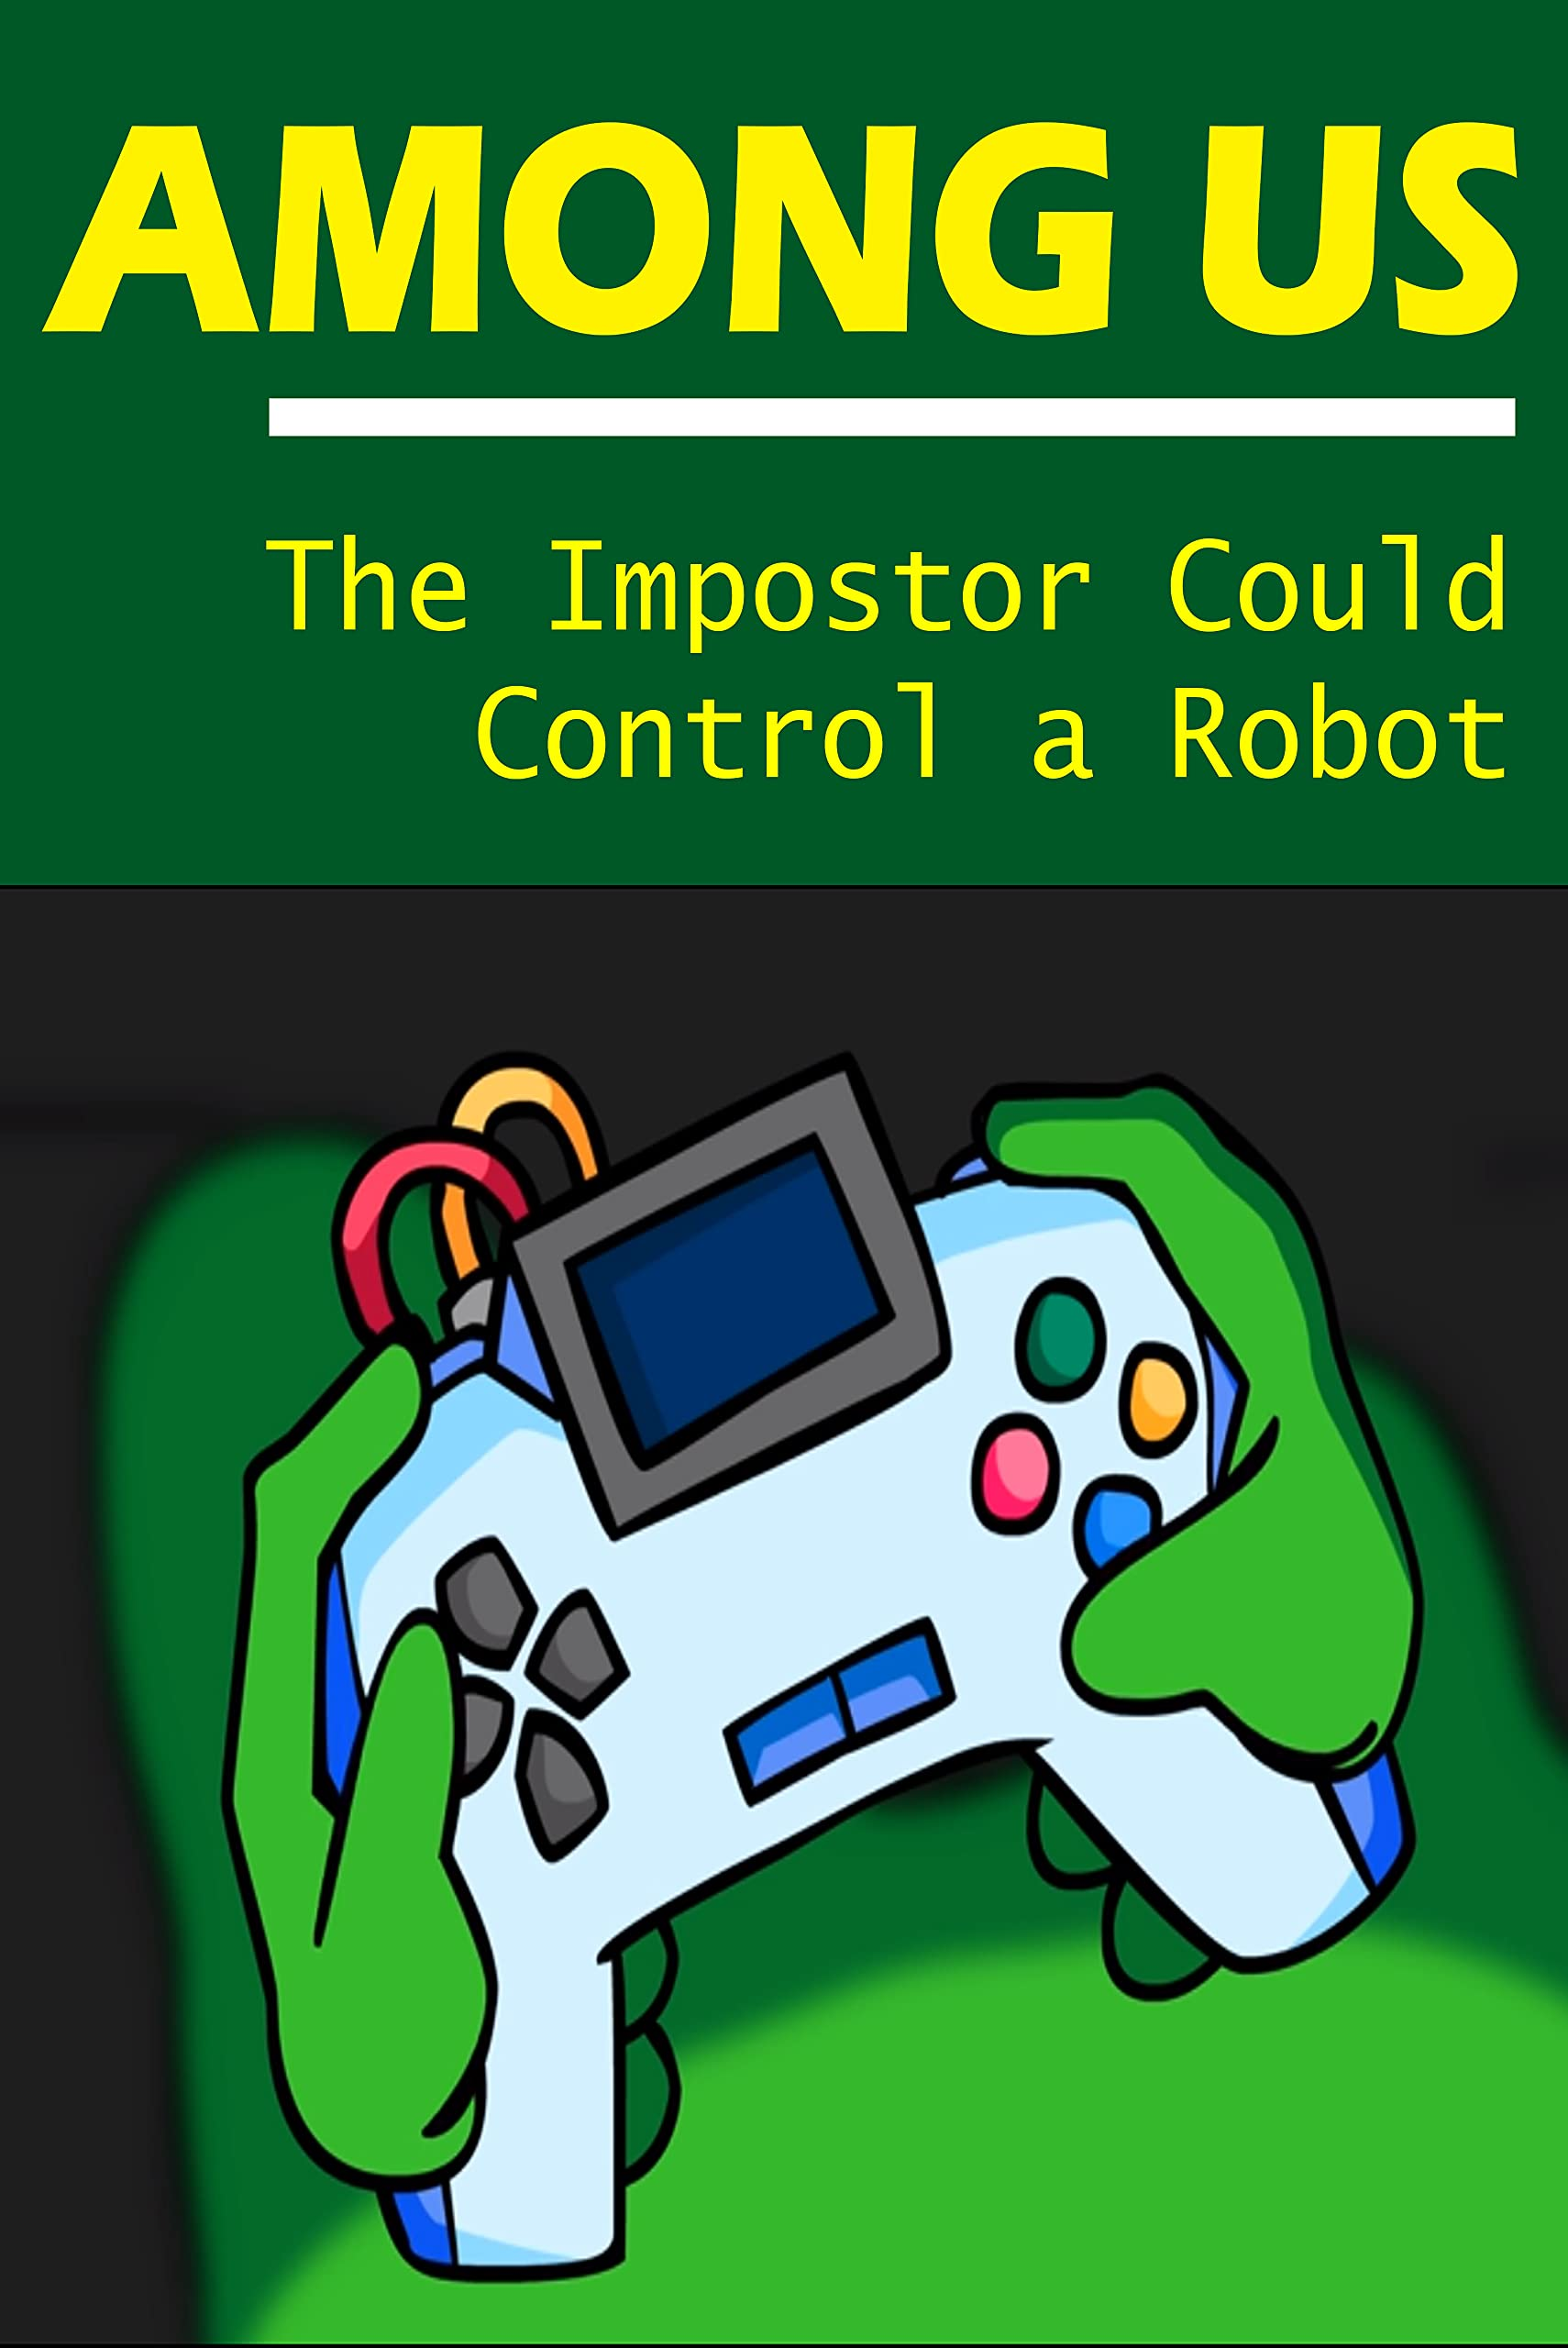 Among Us: The Impostor Could Control a Robot